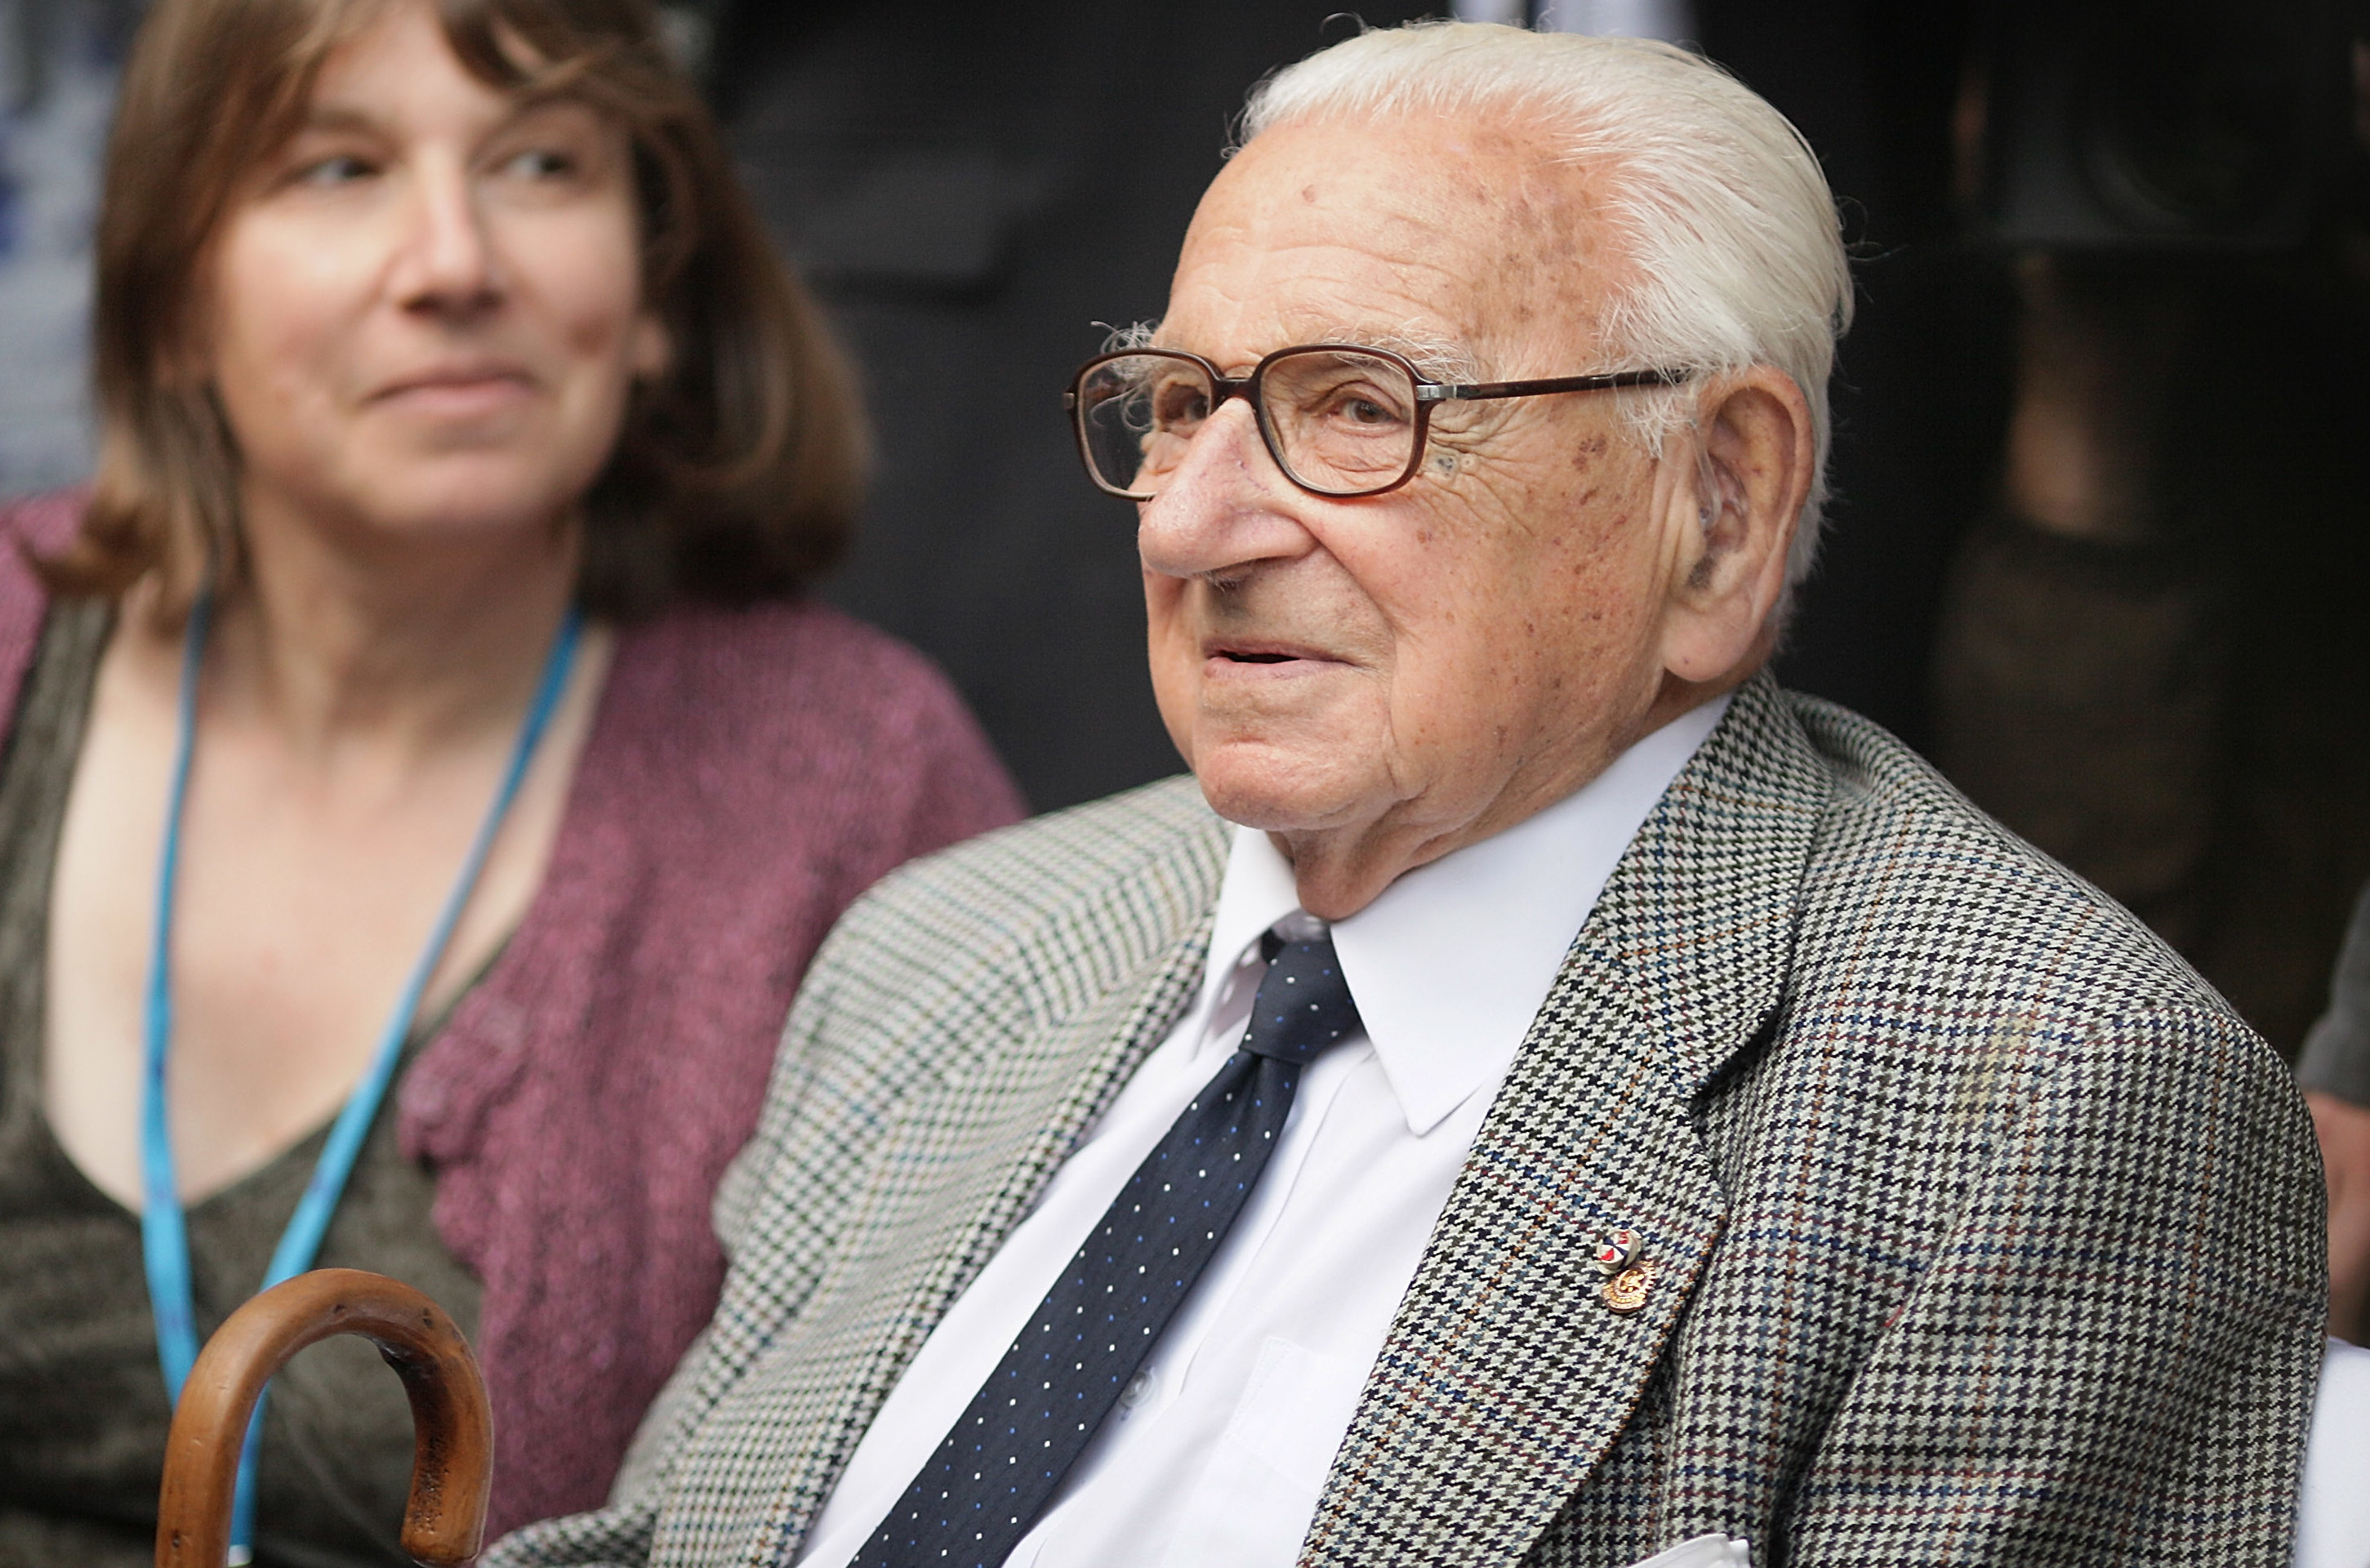 Nicholas Winton waits to greet his surviving evacuees at Liverpool Street railway station on September 4, 2009, in London, England. (Peter Macdiarmid/Getty Images)